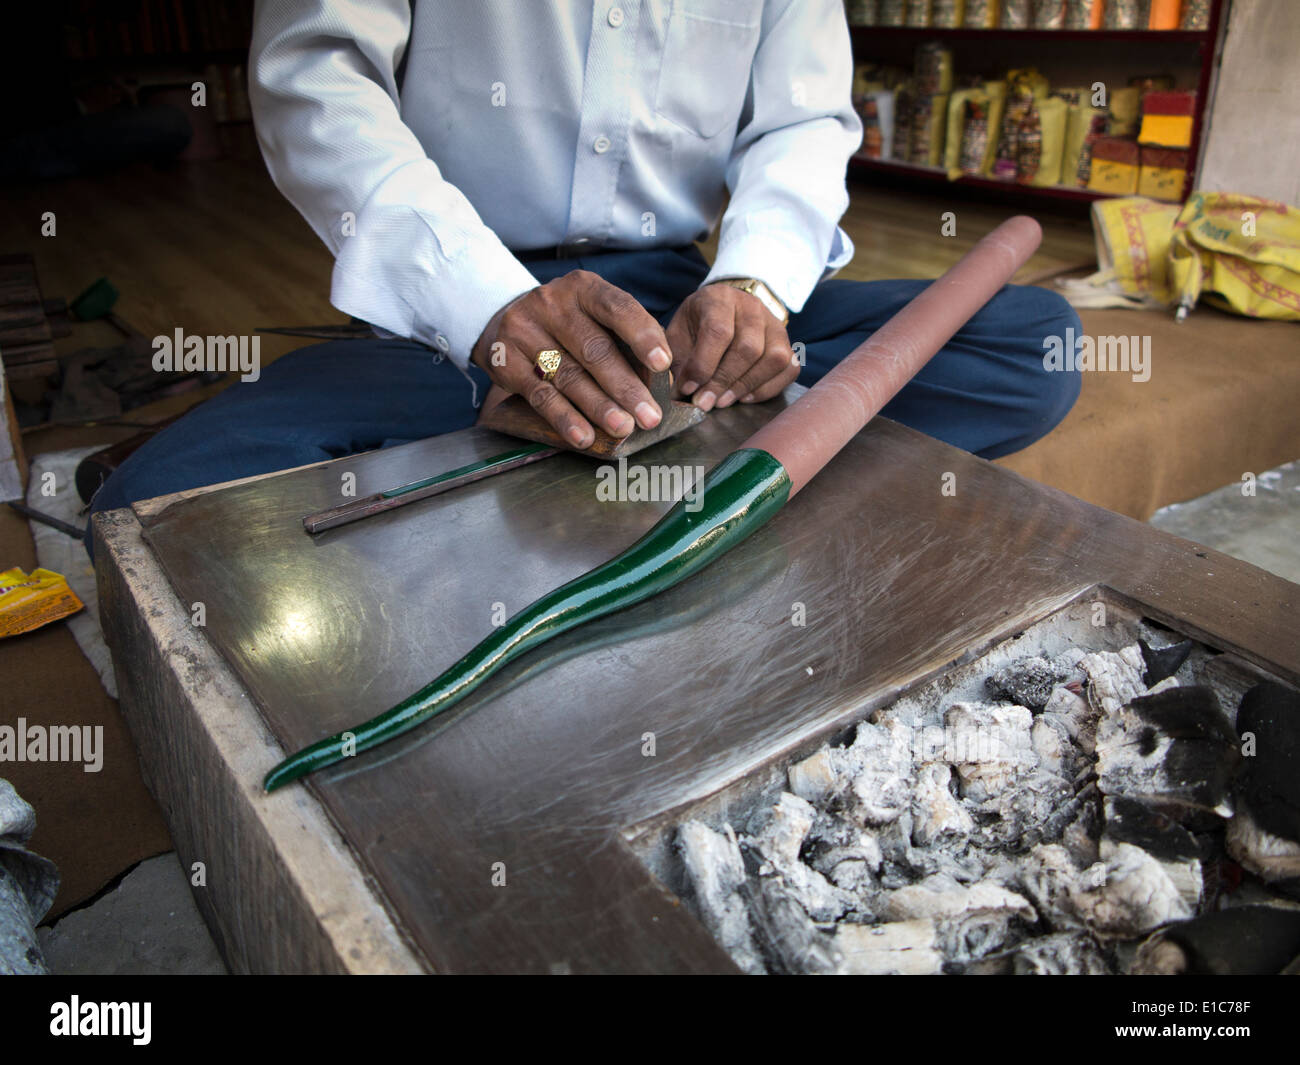 India, Rajasthan, Jodhpur, craftsman making green lac bangle, rolling the heated lac over charcoal fire - Stock Image